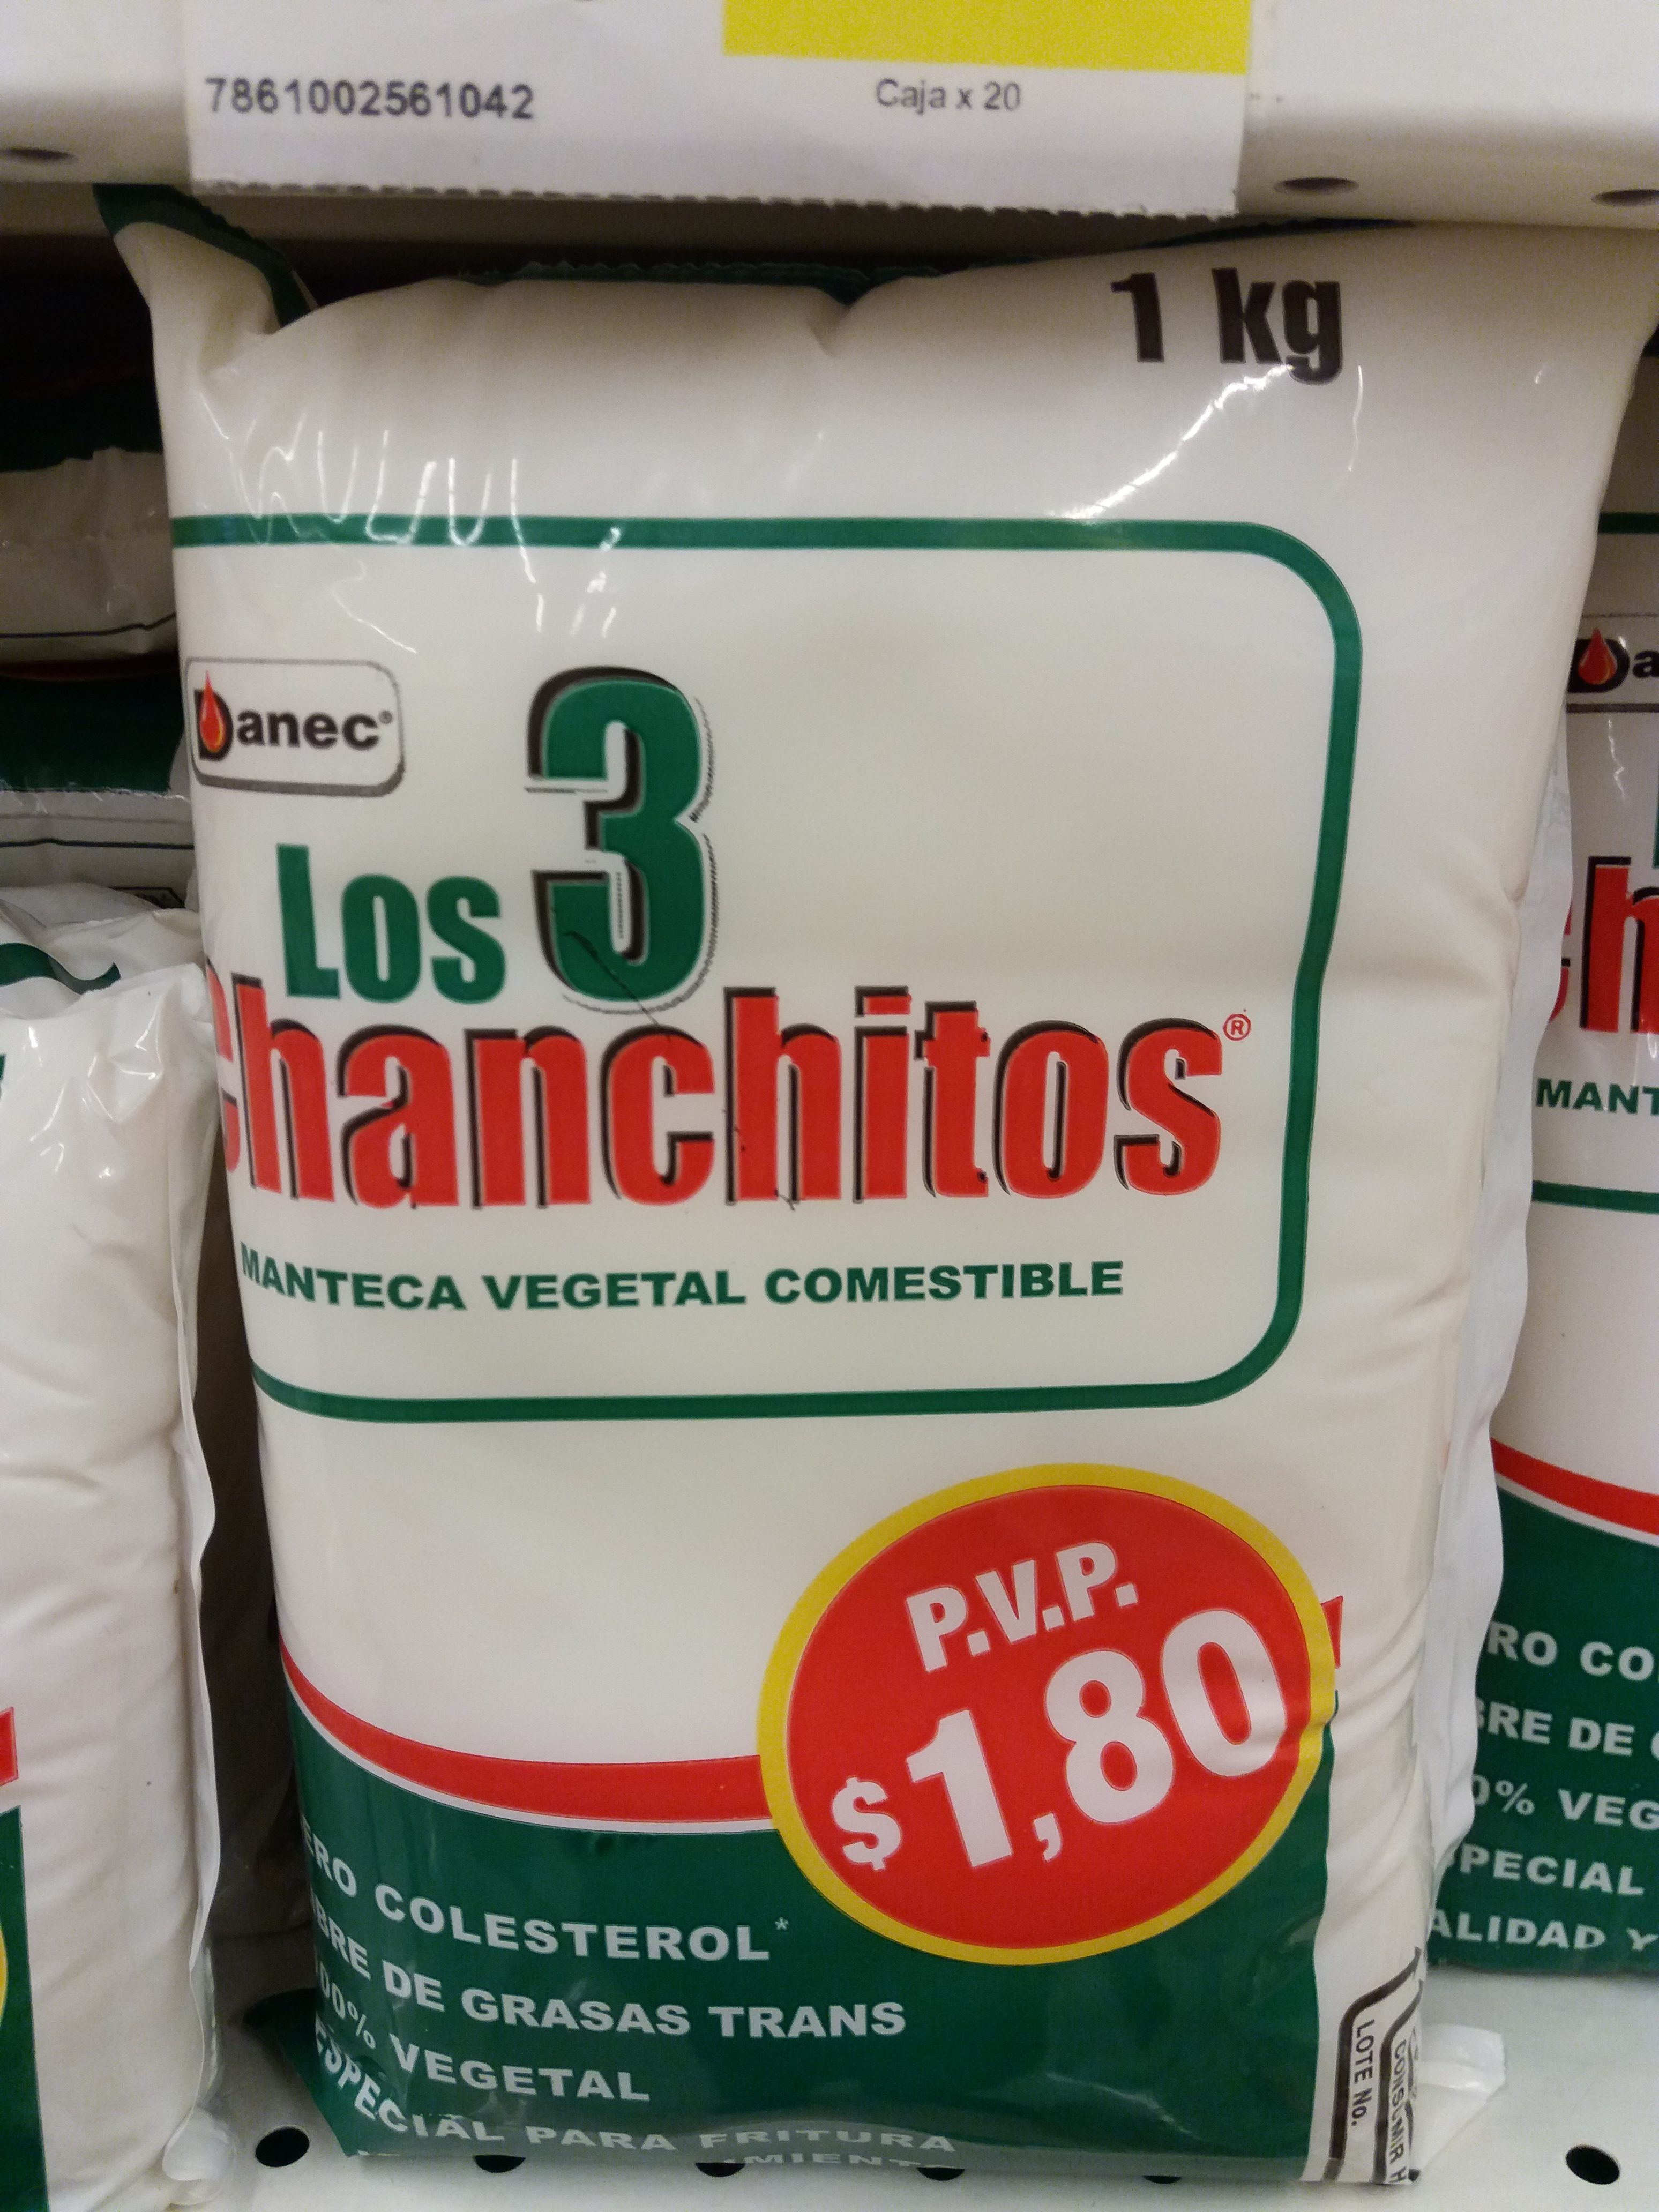 Tres chanchitos Mantequilla Image